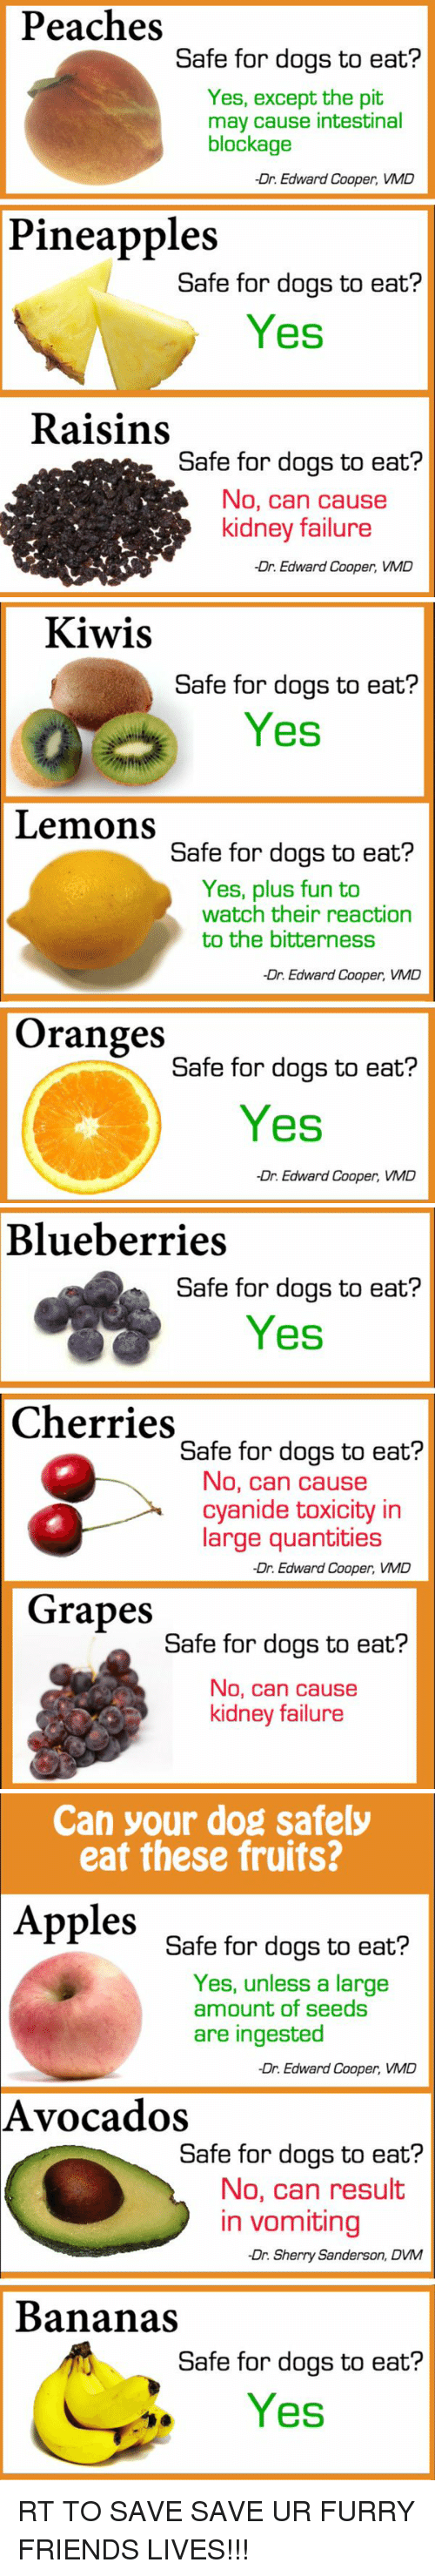 Can A Dog Safely Eat Blueberries